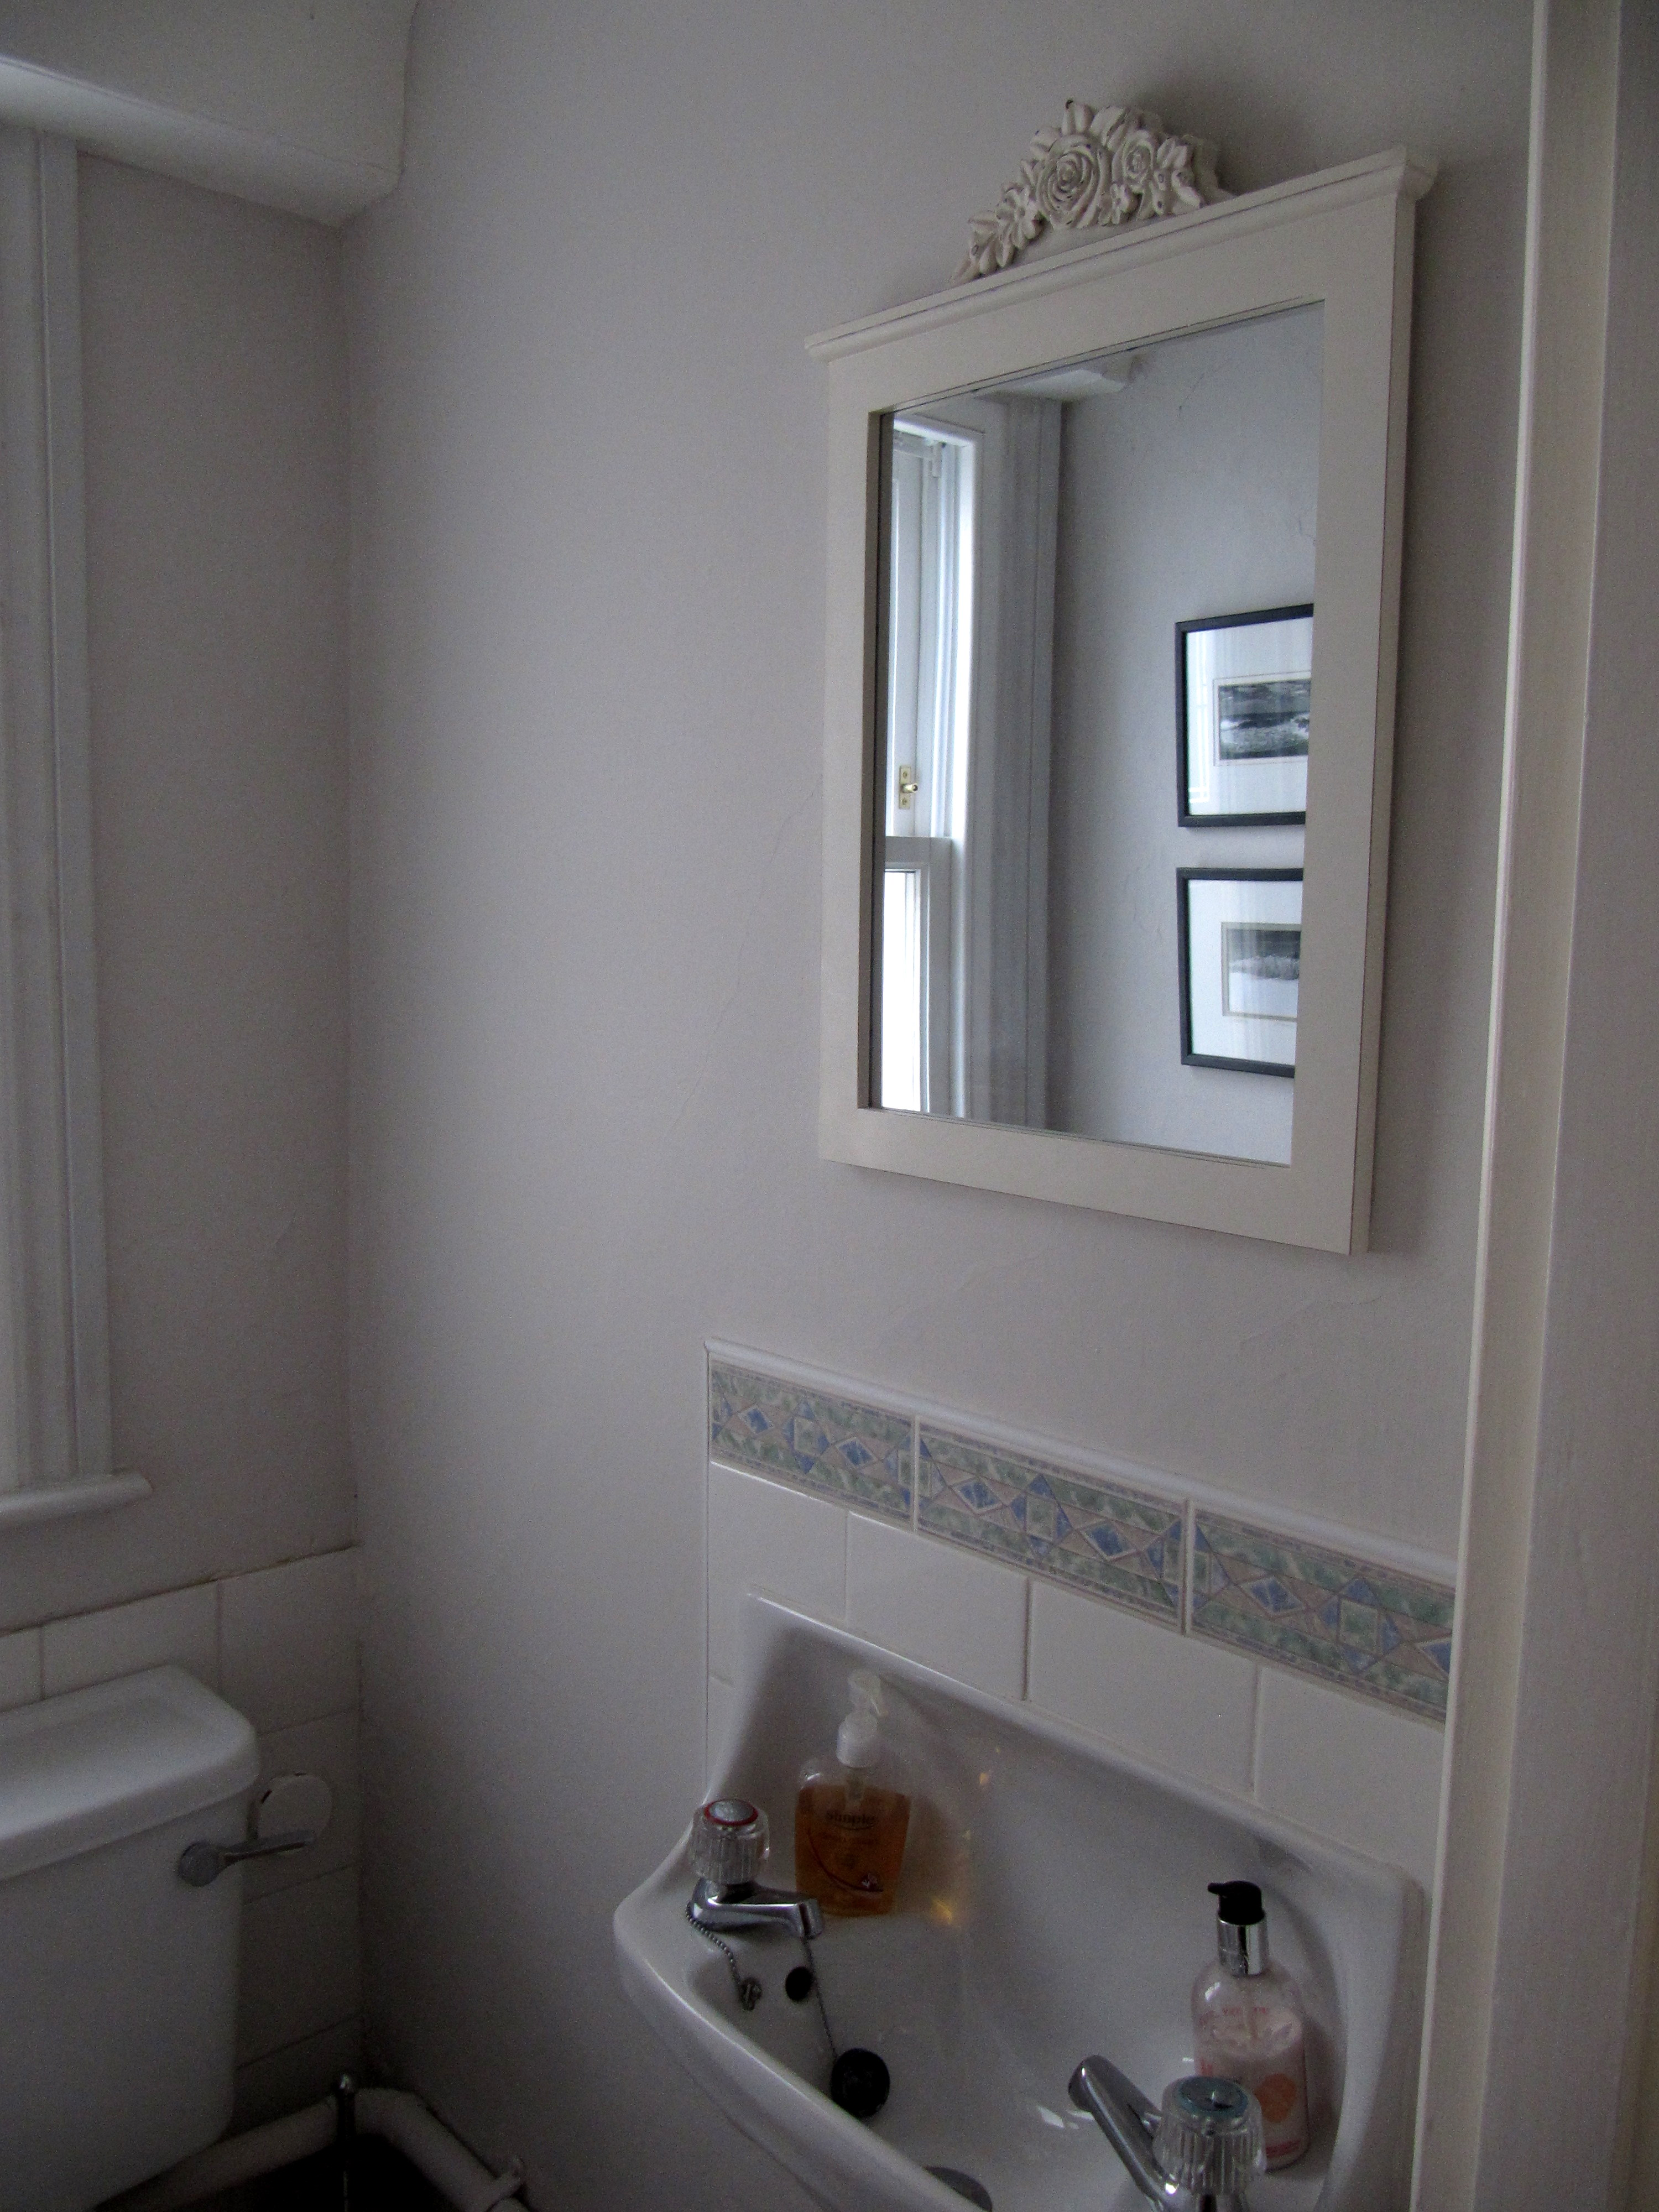 Bathroom with no windows - Decorating Update And How To Heal A Broken Heart